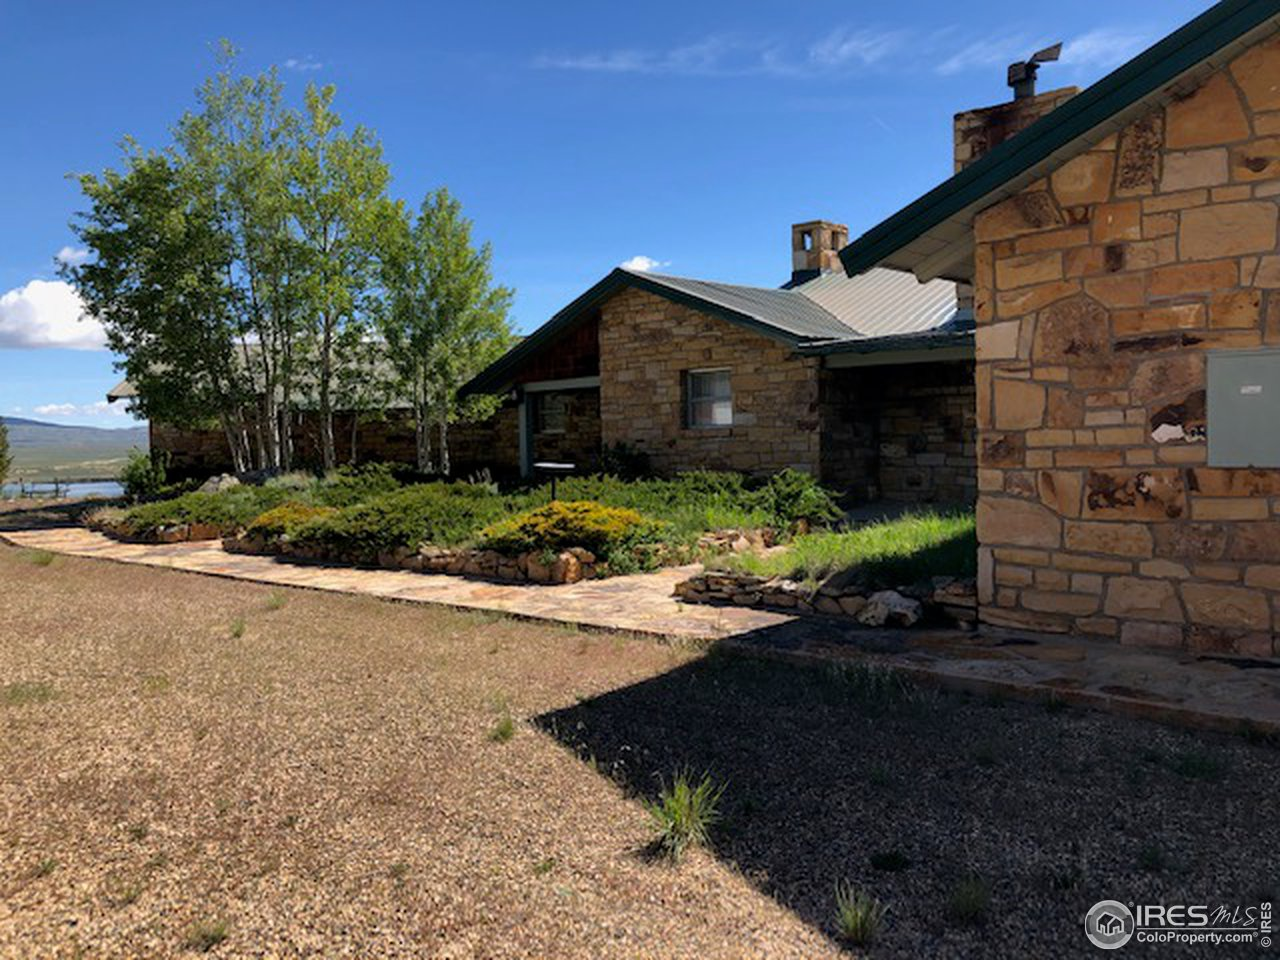 652 County Road 4, Cowdrey, CO 80434 | RealEstate com